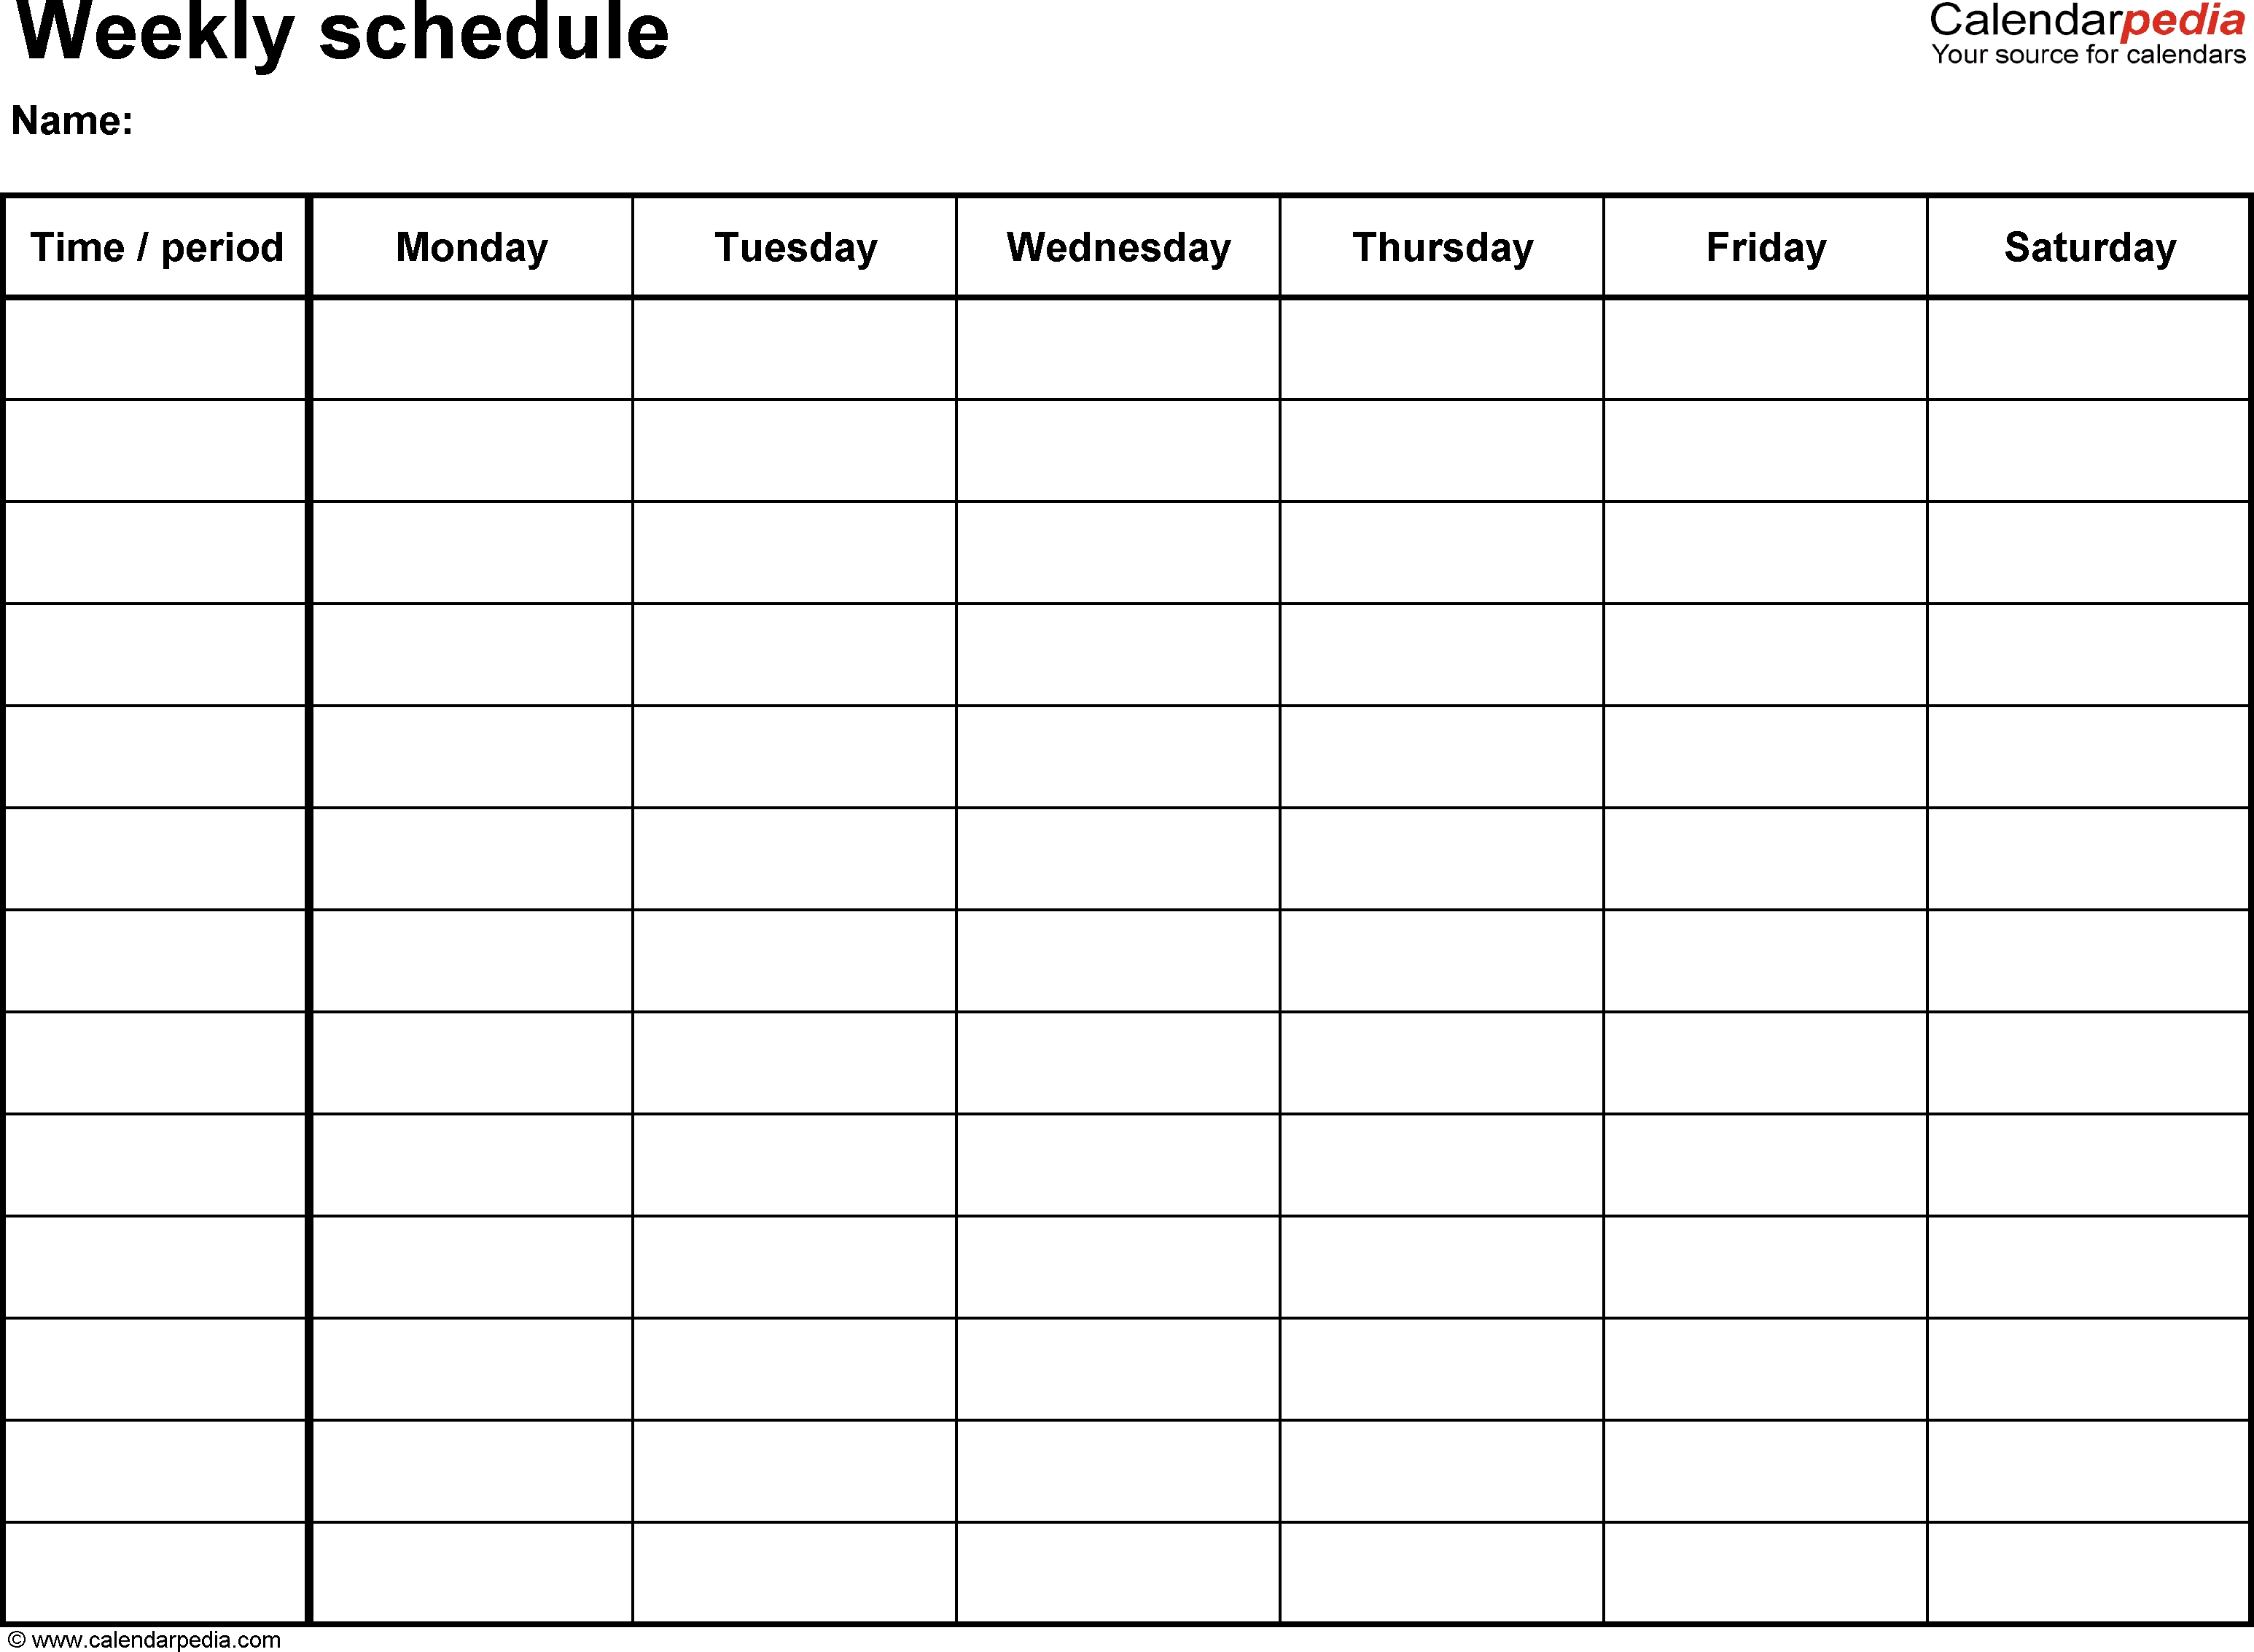 Weekly Schedule Monday Through Friday | Example Calendar within Blank Calendar Template Monday Through Friday